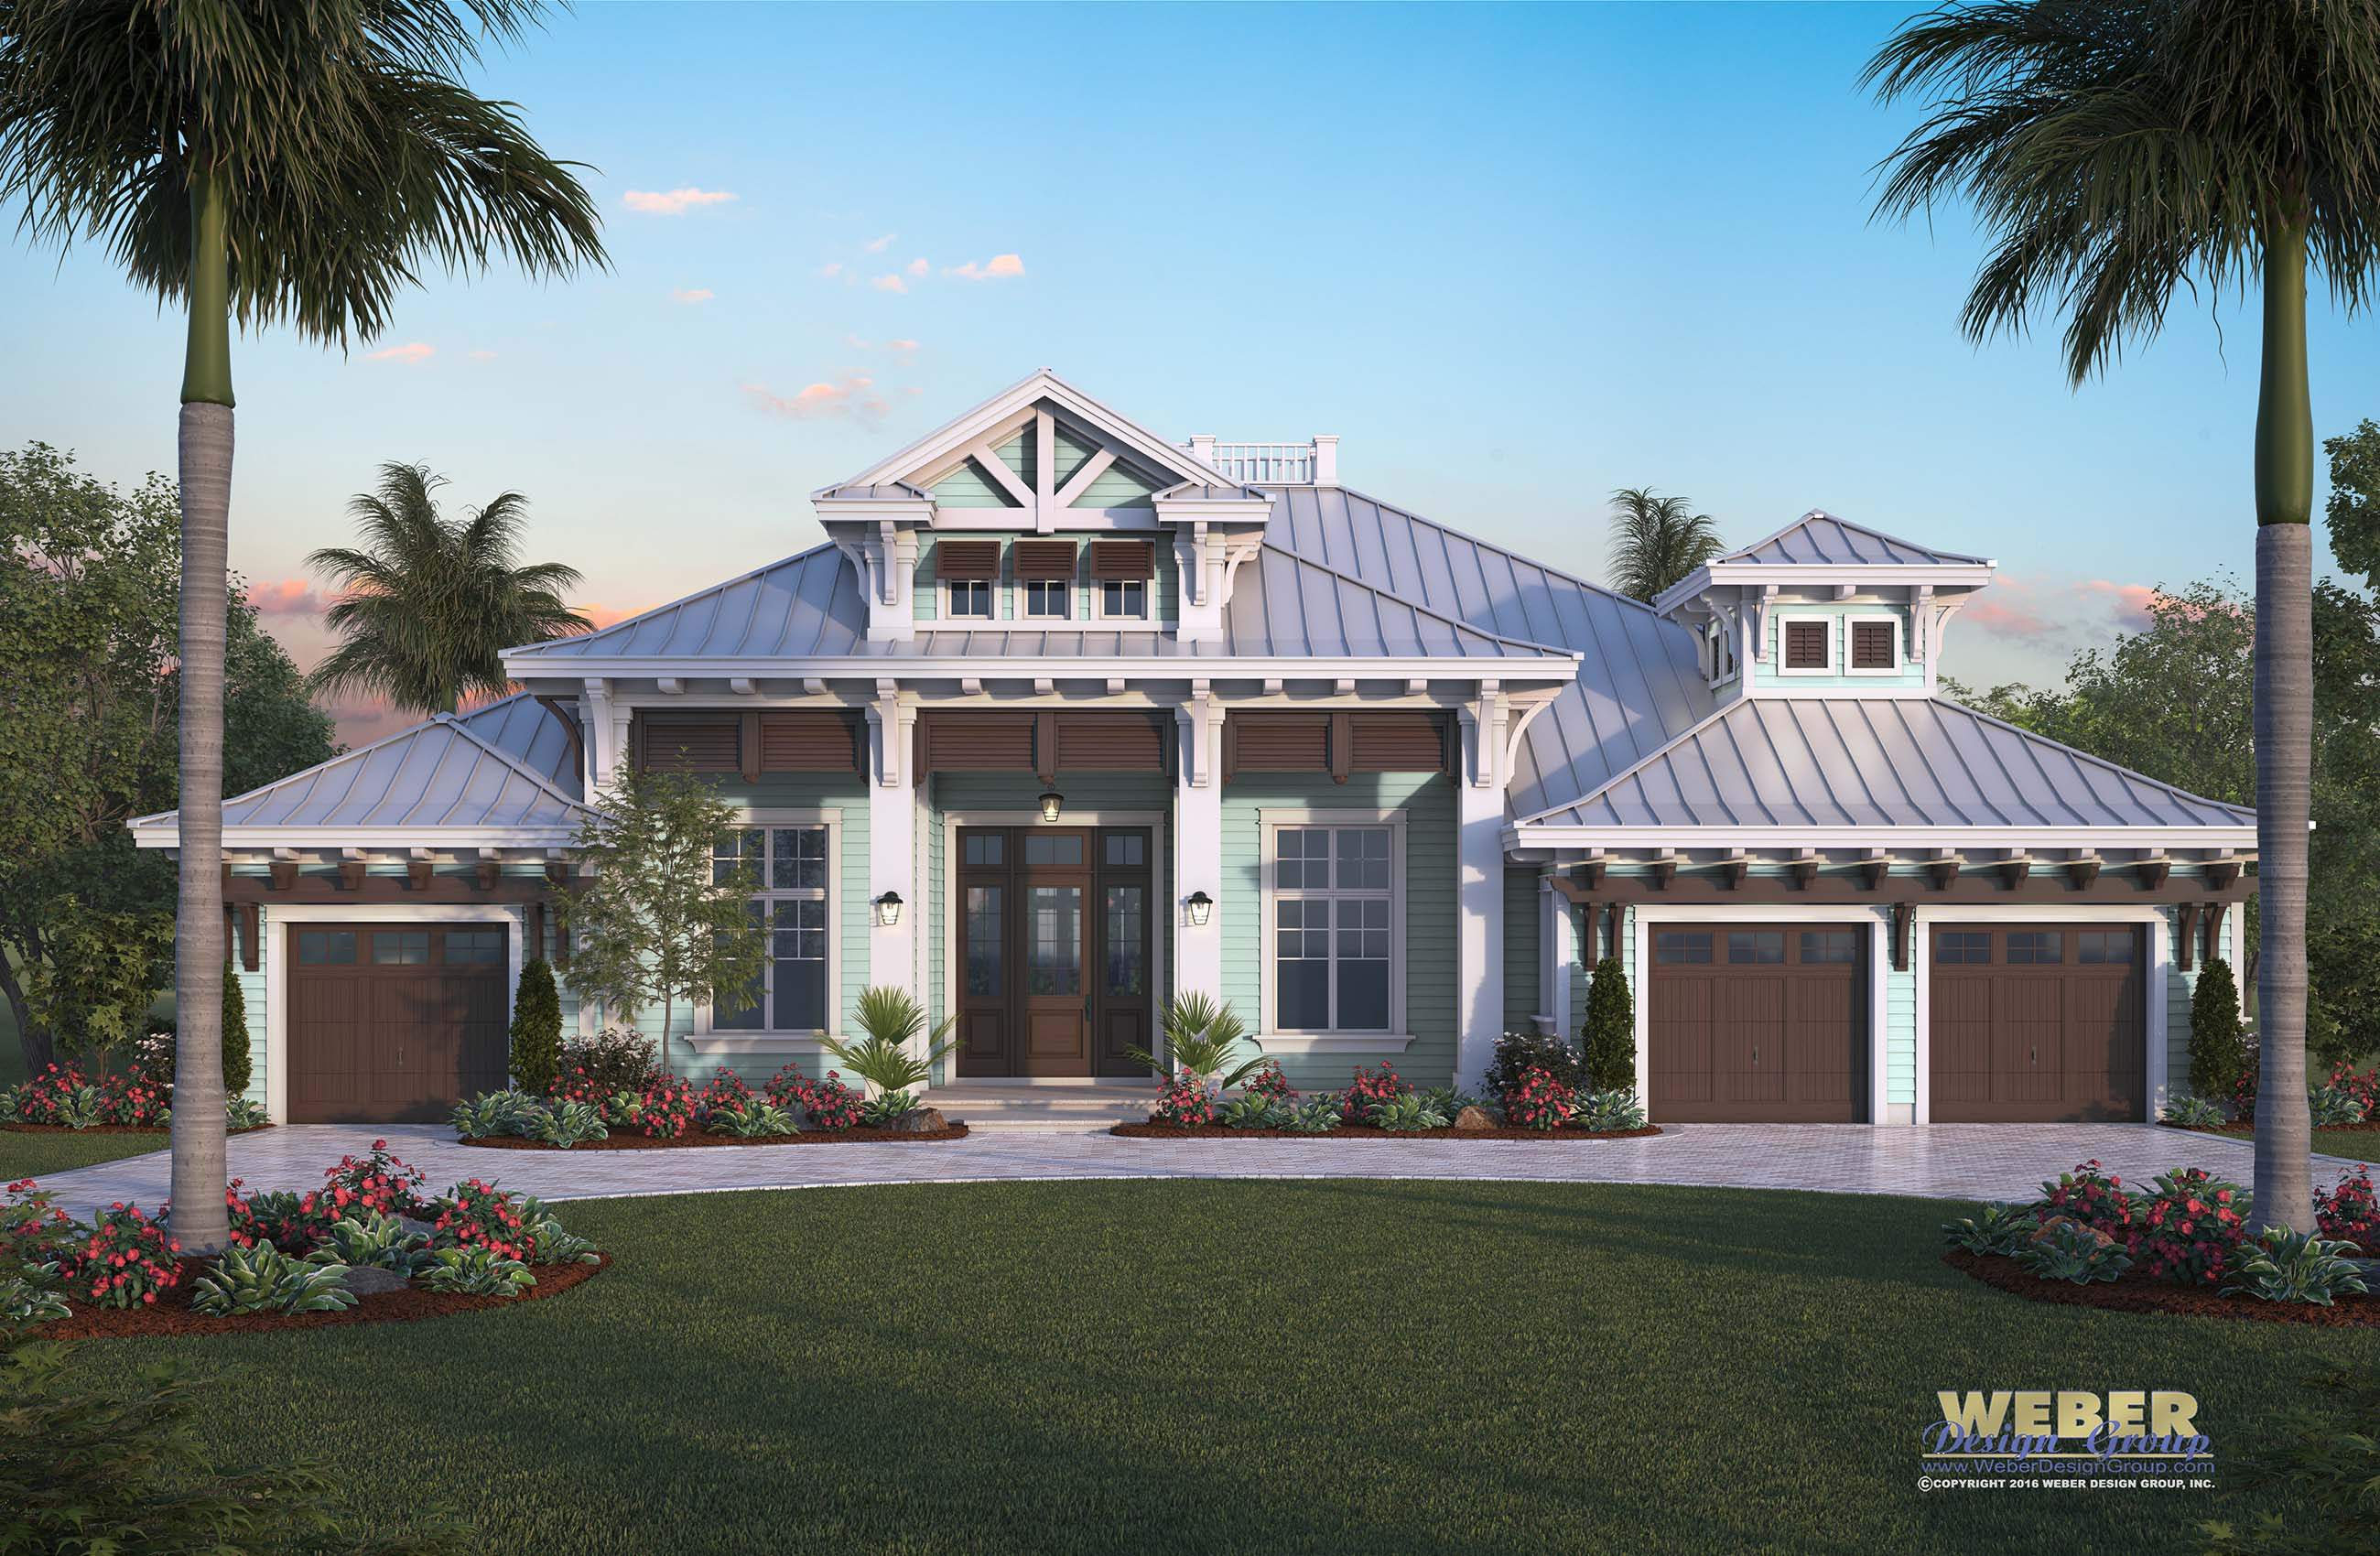 Harbor house plan luxury caribbean beach home outdoor for Beach house elevation designs